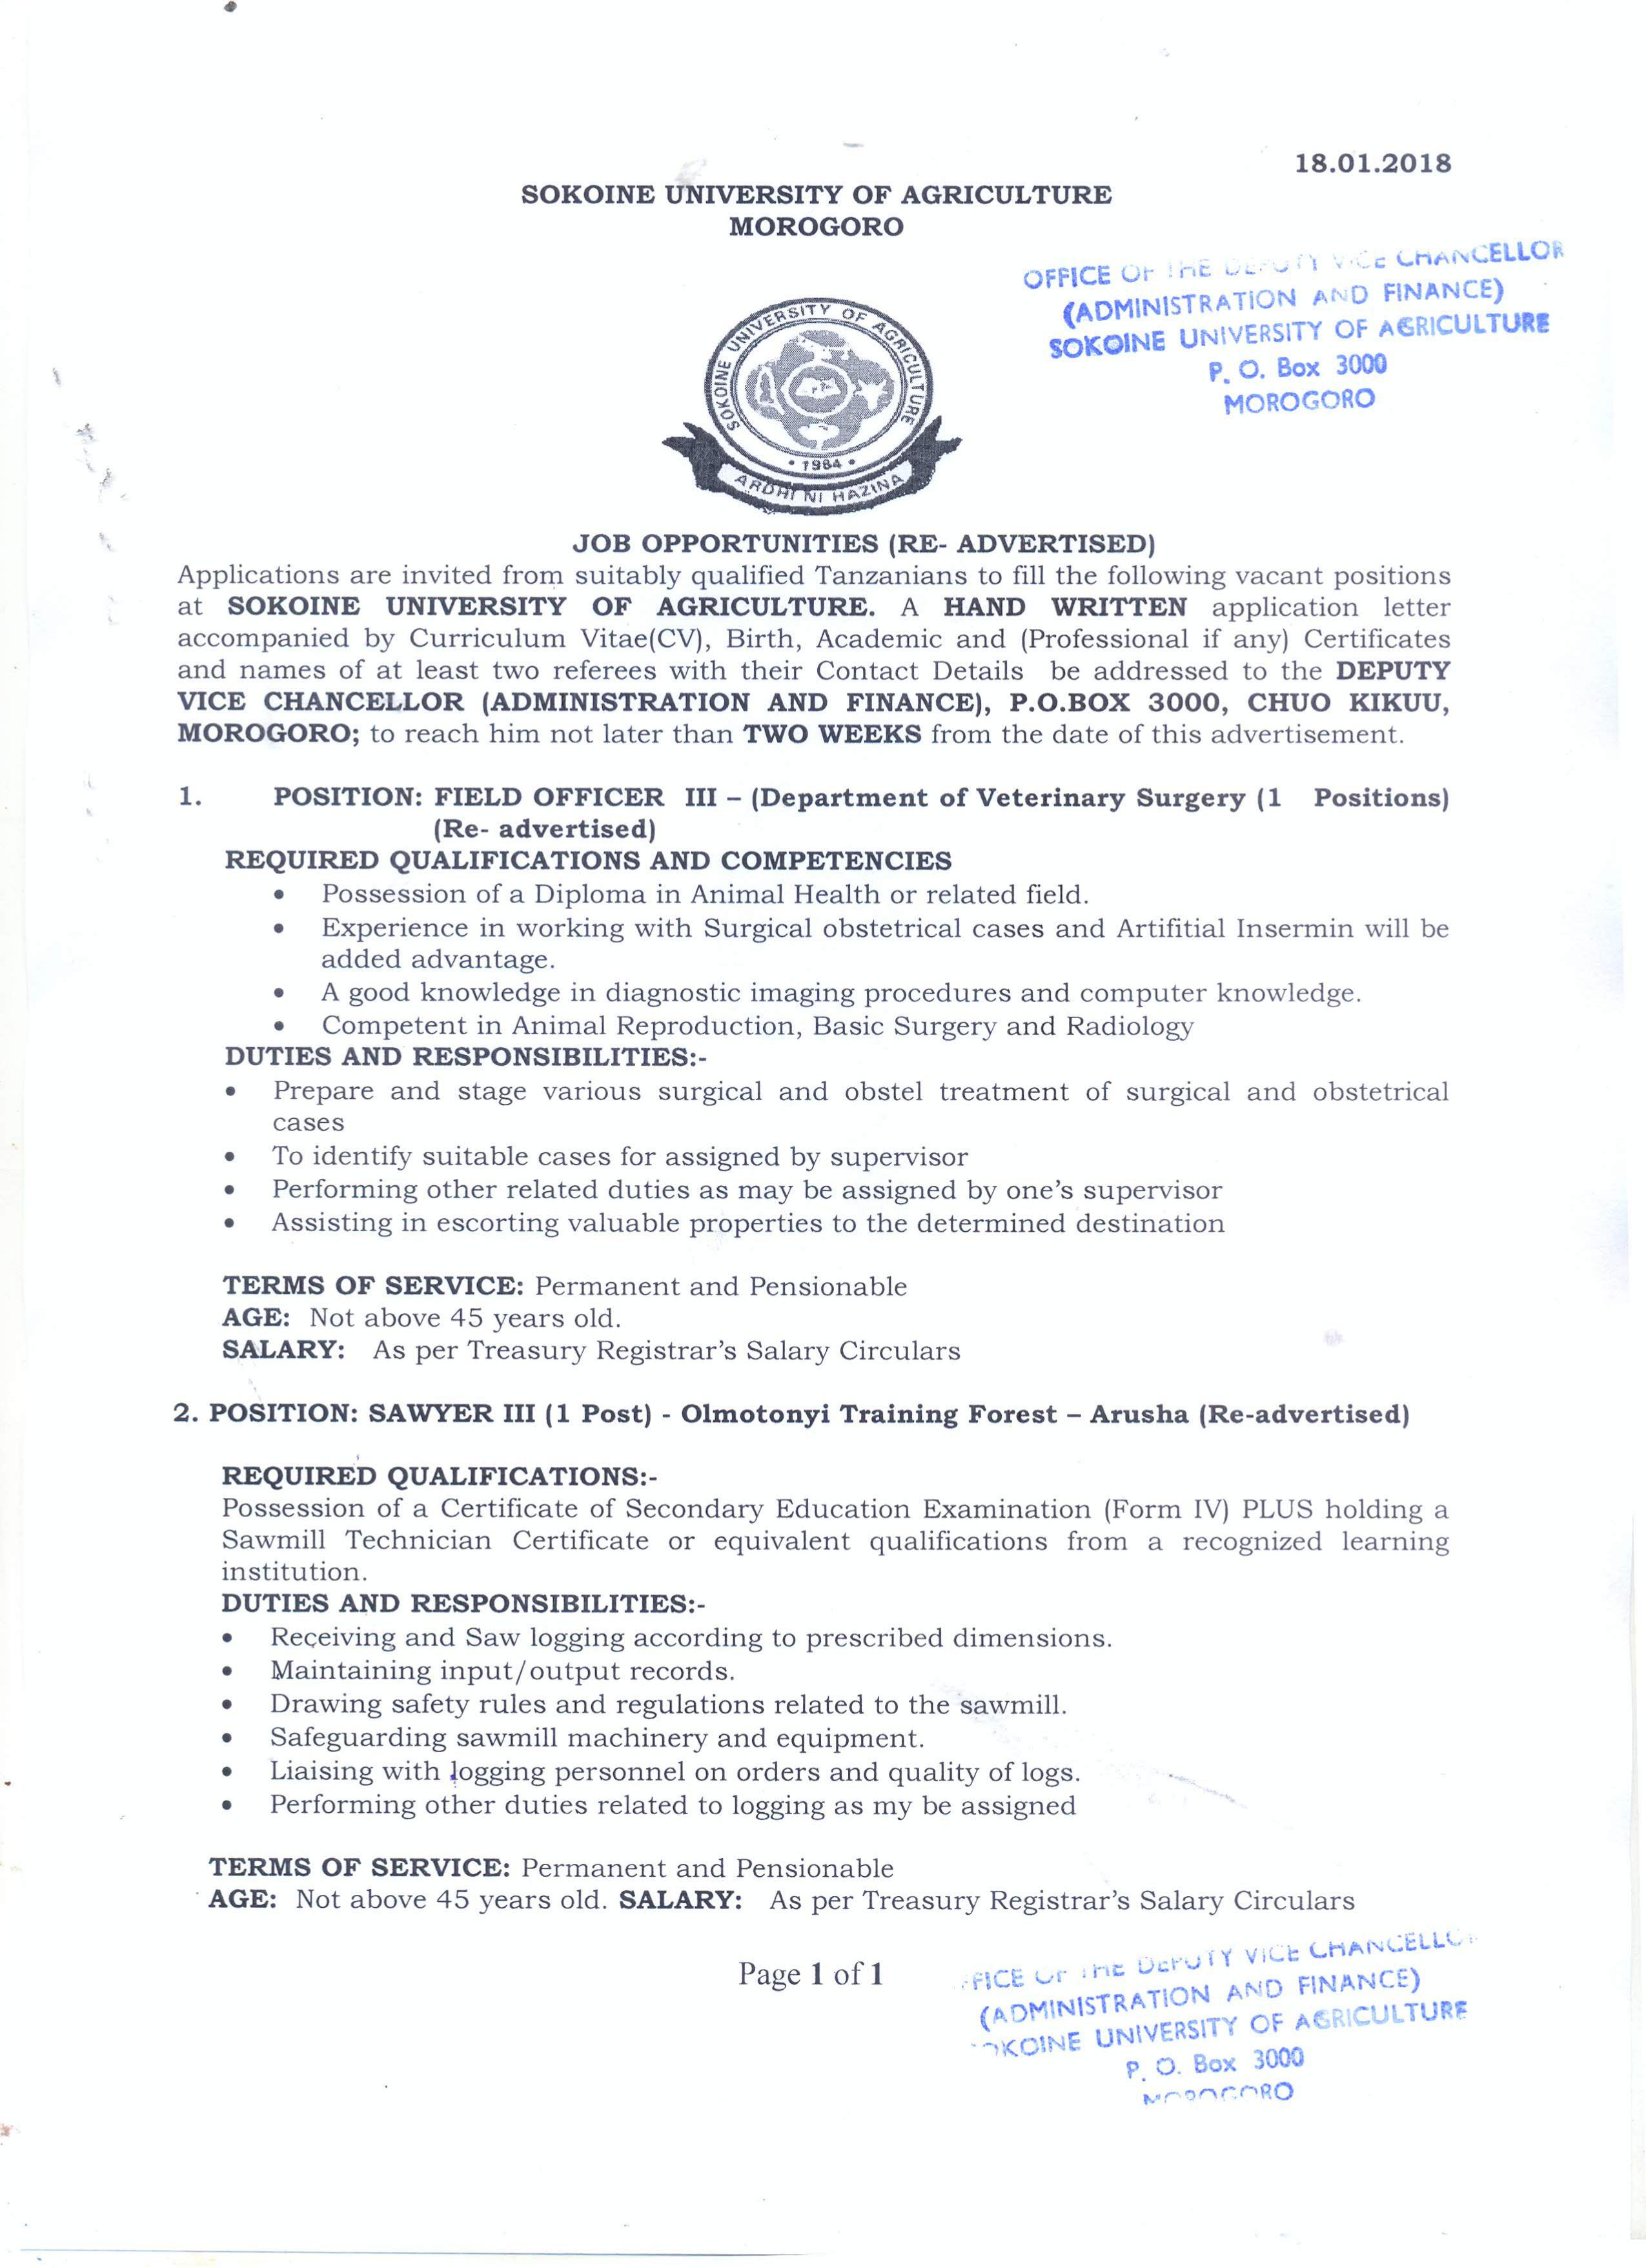 2 Job Opportunities: Field Officer III & Sawyer III,Sokoine University of Agriculture, Tanzania.